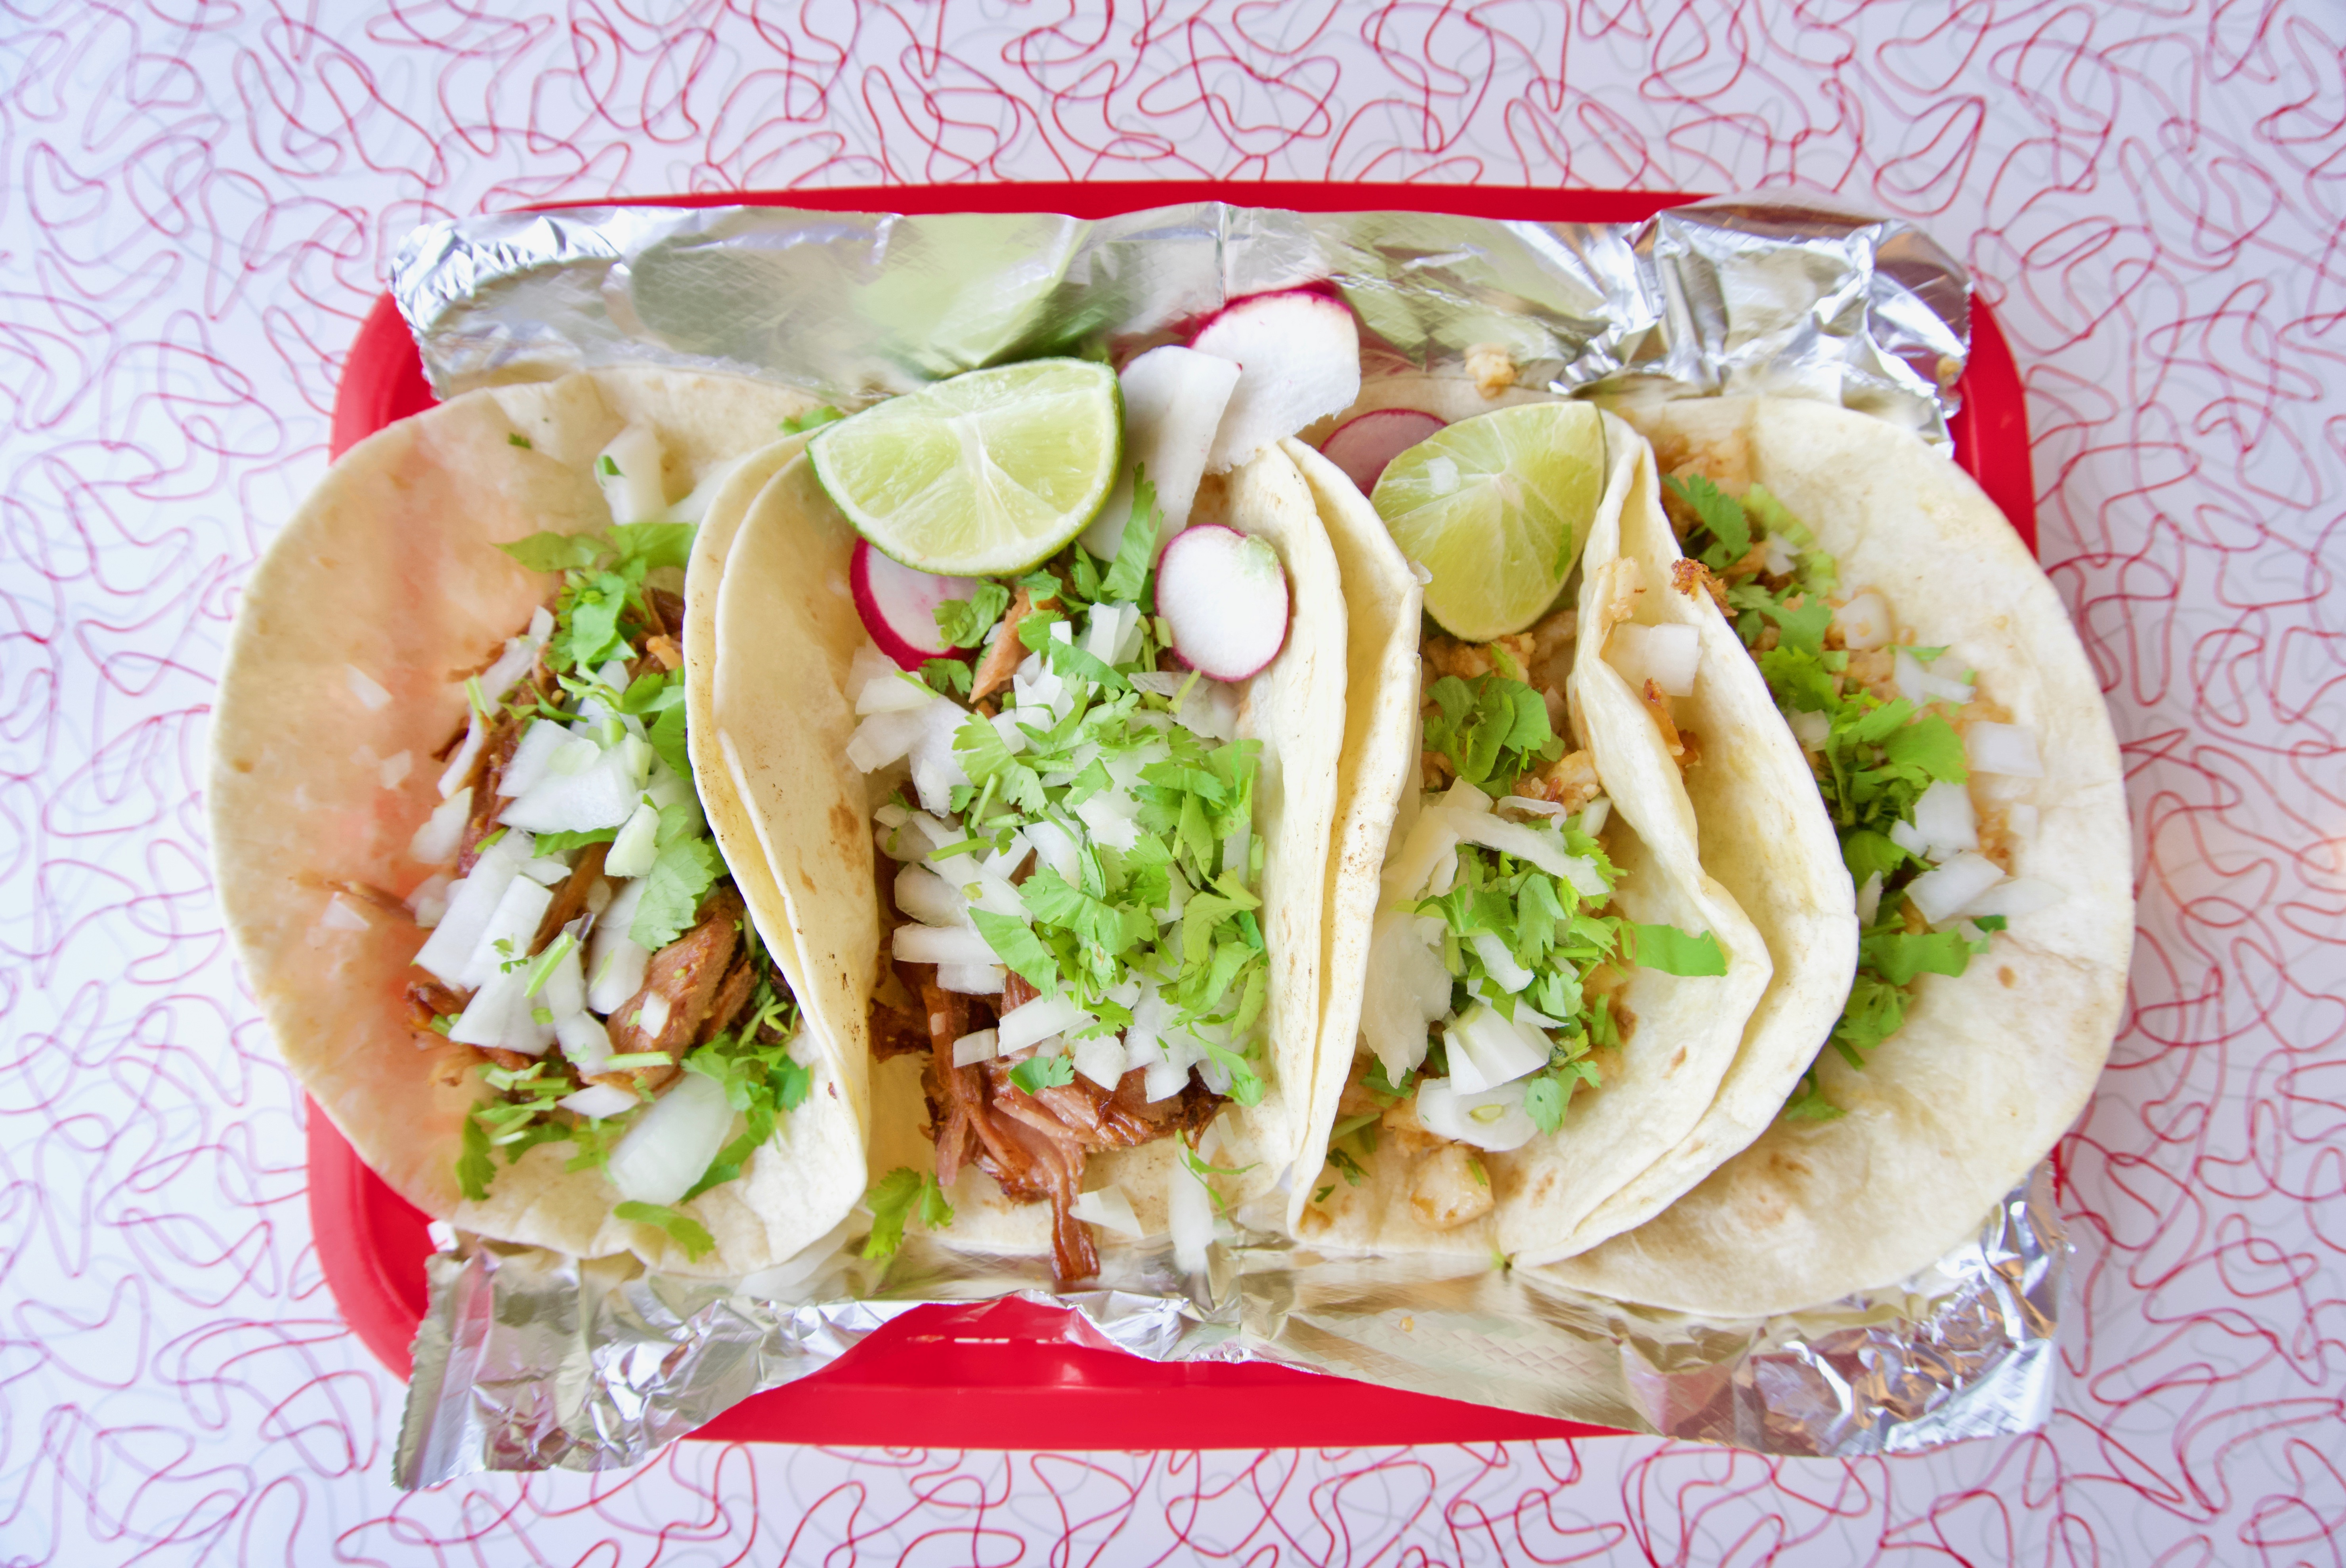 <p>Carnitas and pescado tacos / Image: Brian Planalp // Published: 5.20.18</p>